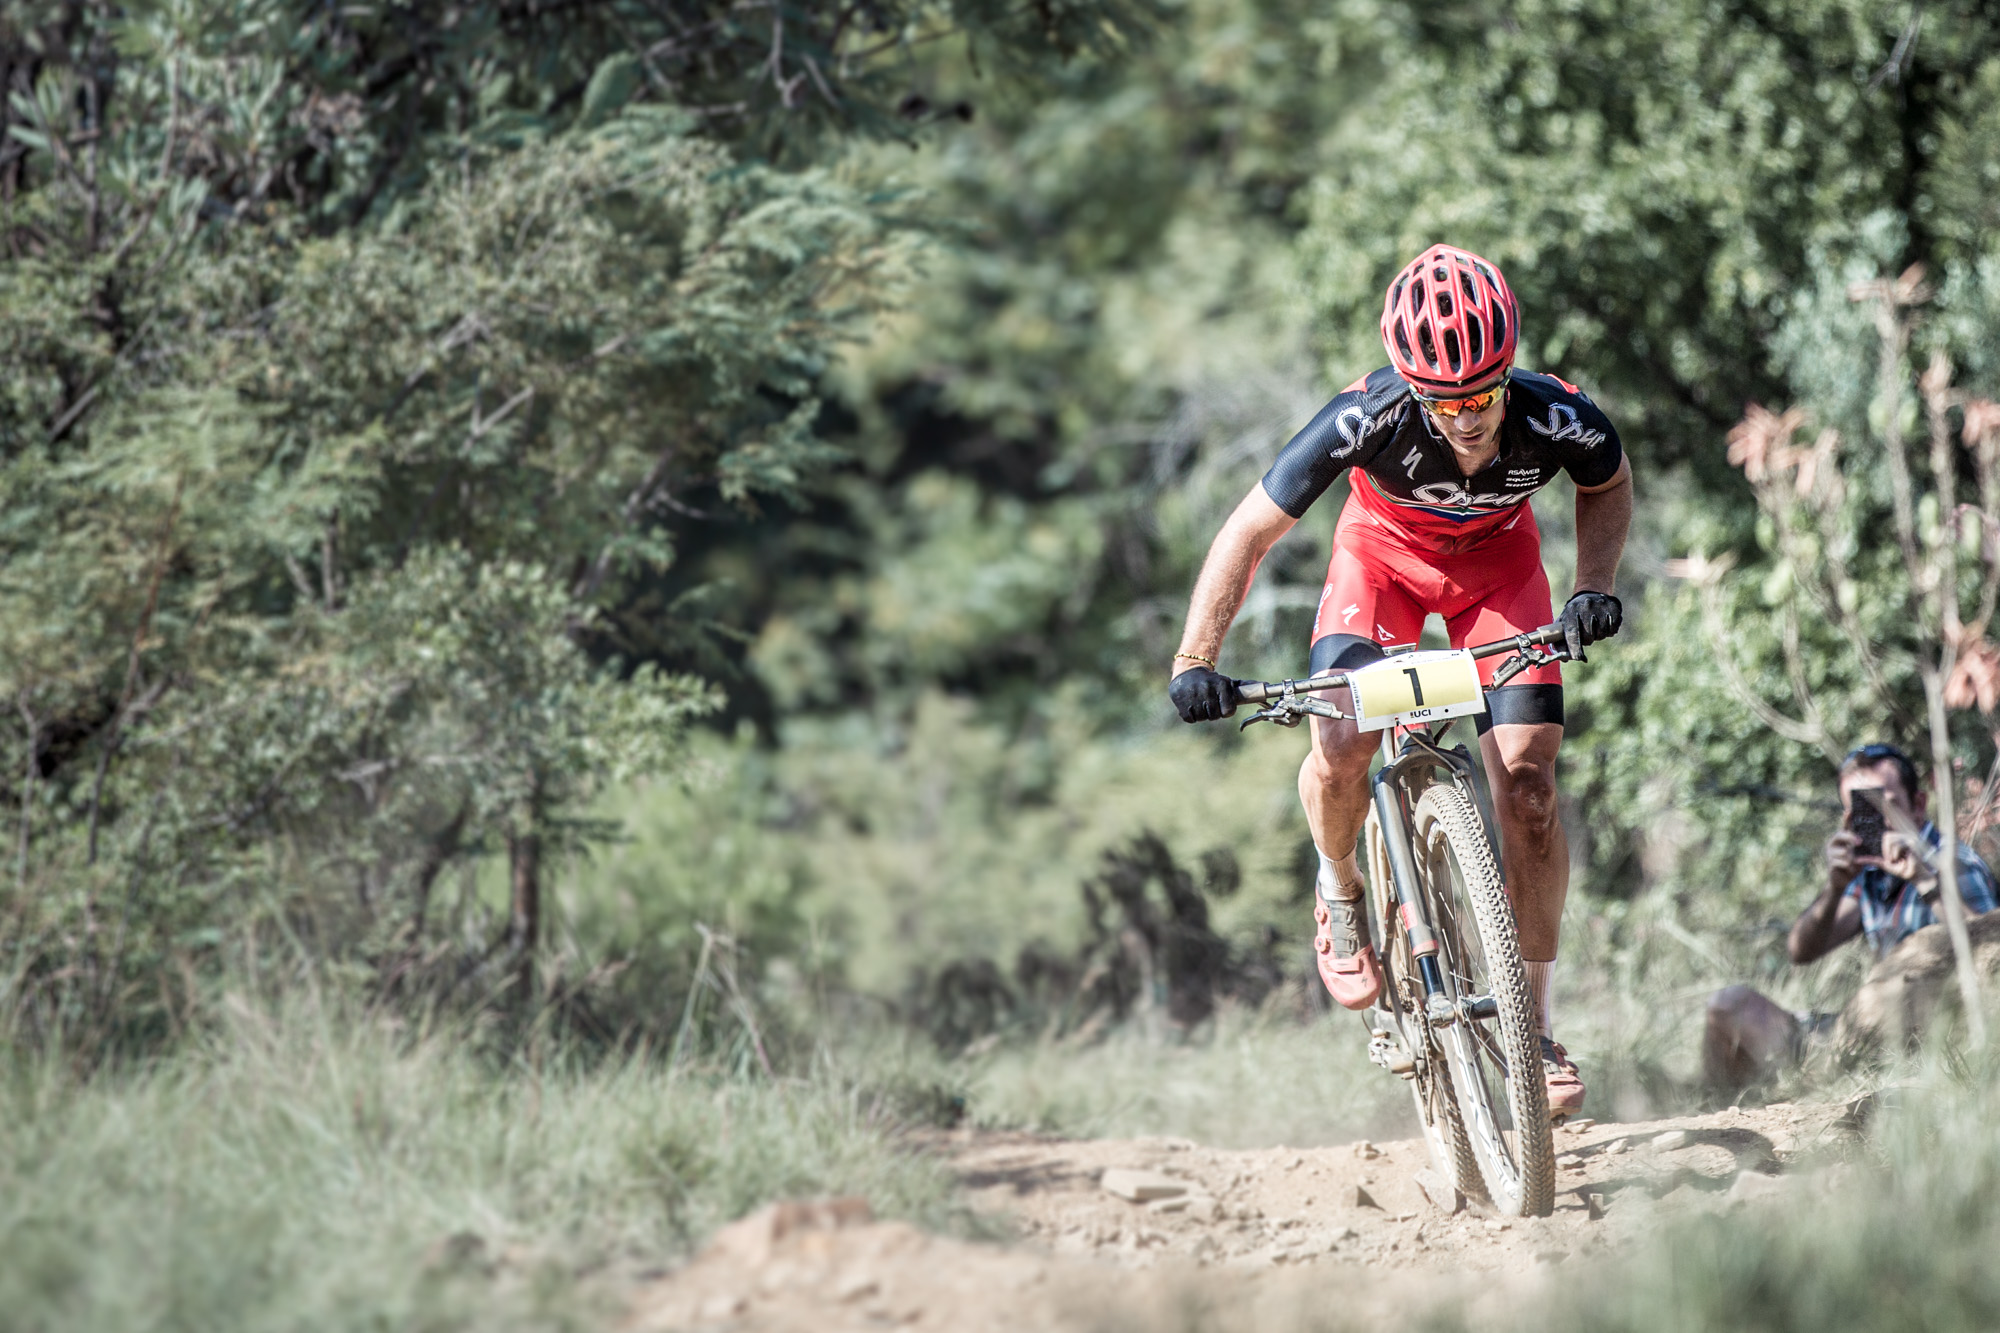 Log Leader, after four rounds of the Stihl 2016 SA XCO Cup Series. The fifth and final round takes place at Happy Valley Conservancy in Bloemfontein on Saturday 18 June. Photo credit: Hendrik Steytler